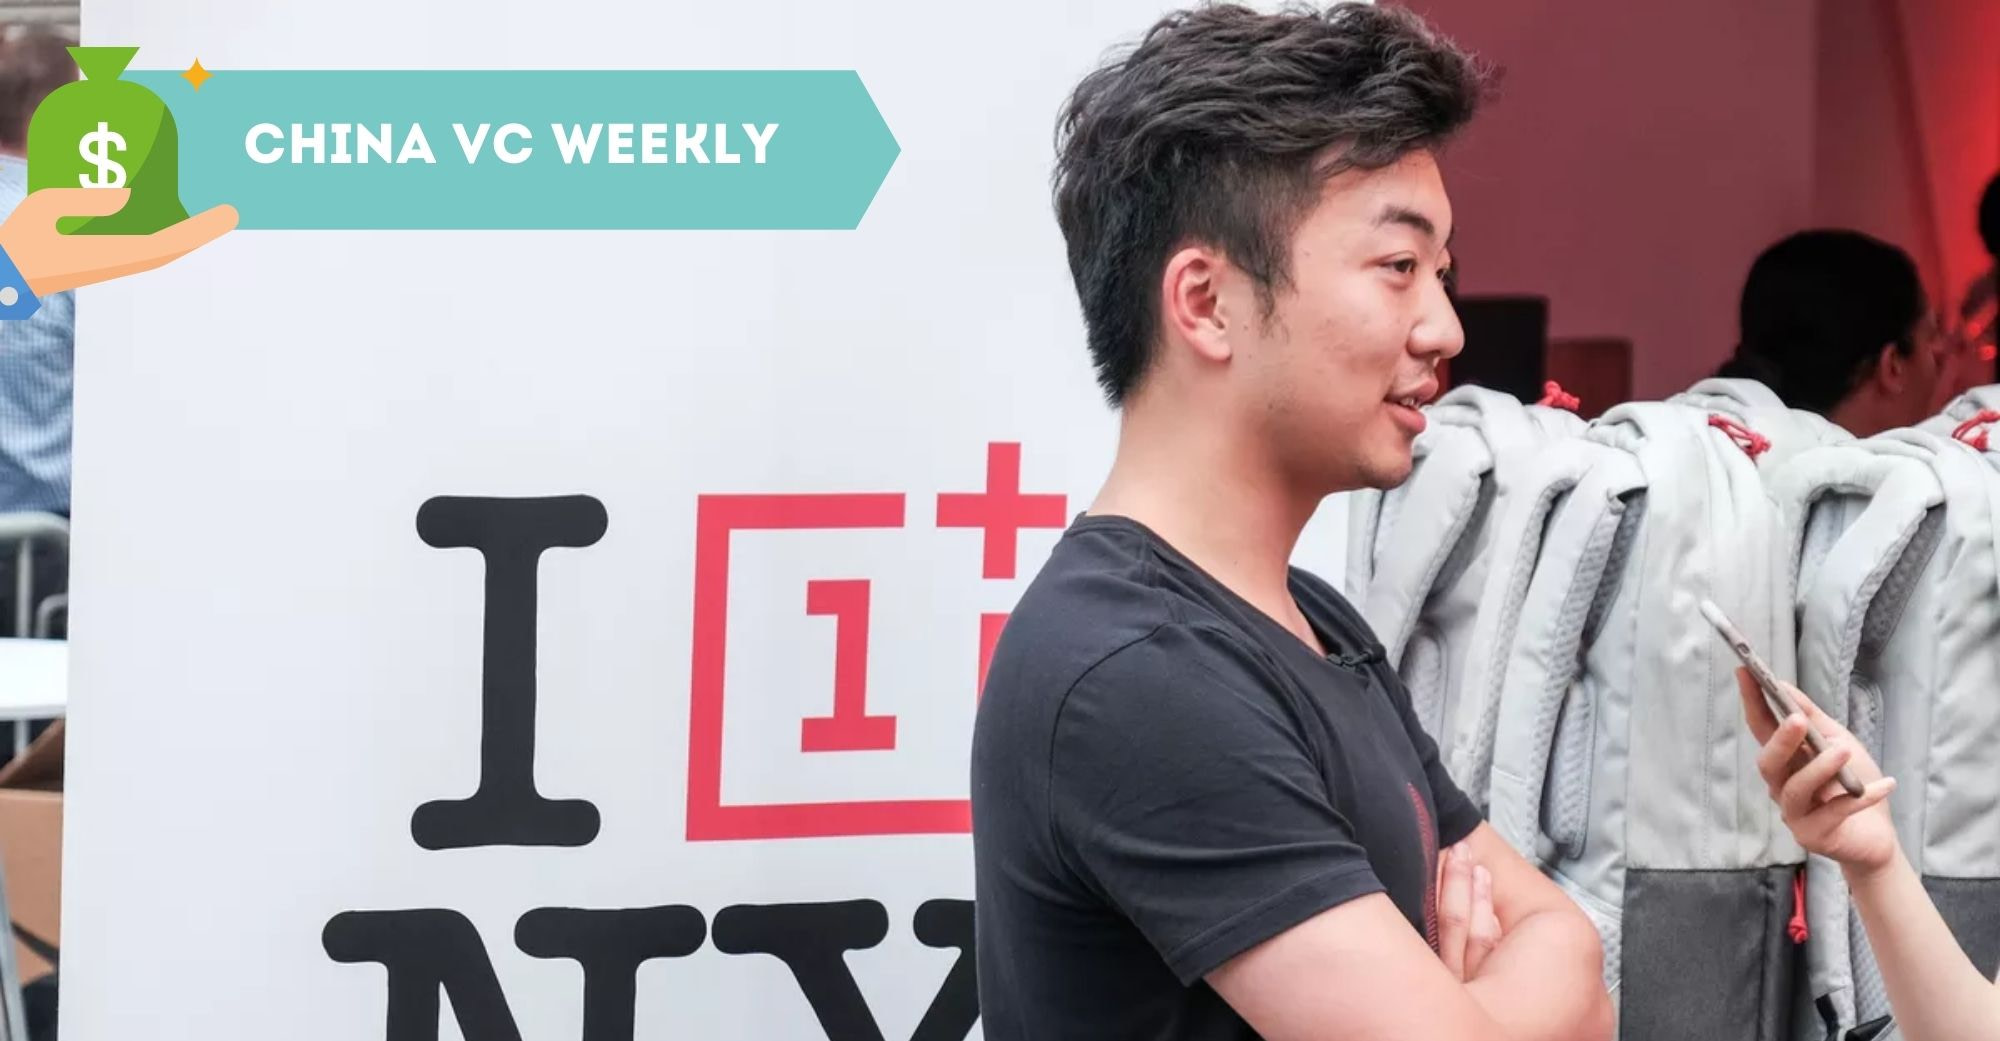 China VC Weekly: $7M for Nothing, K12 EdTech Financing and More